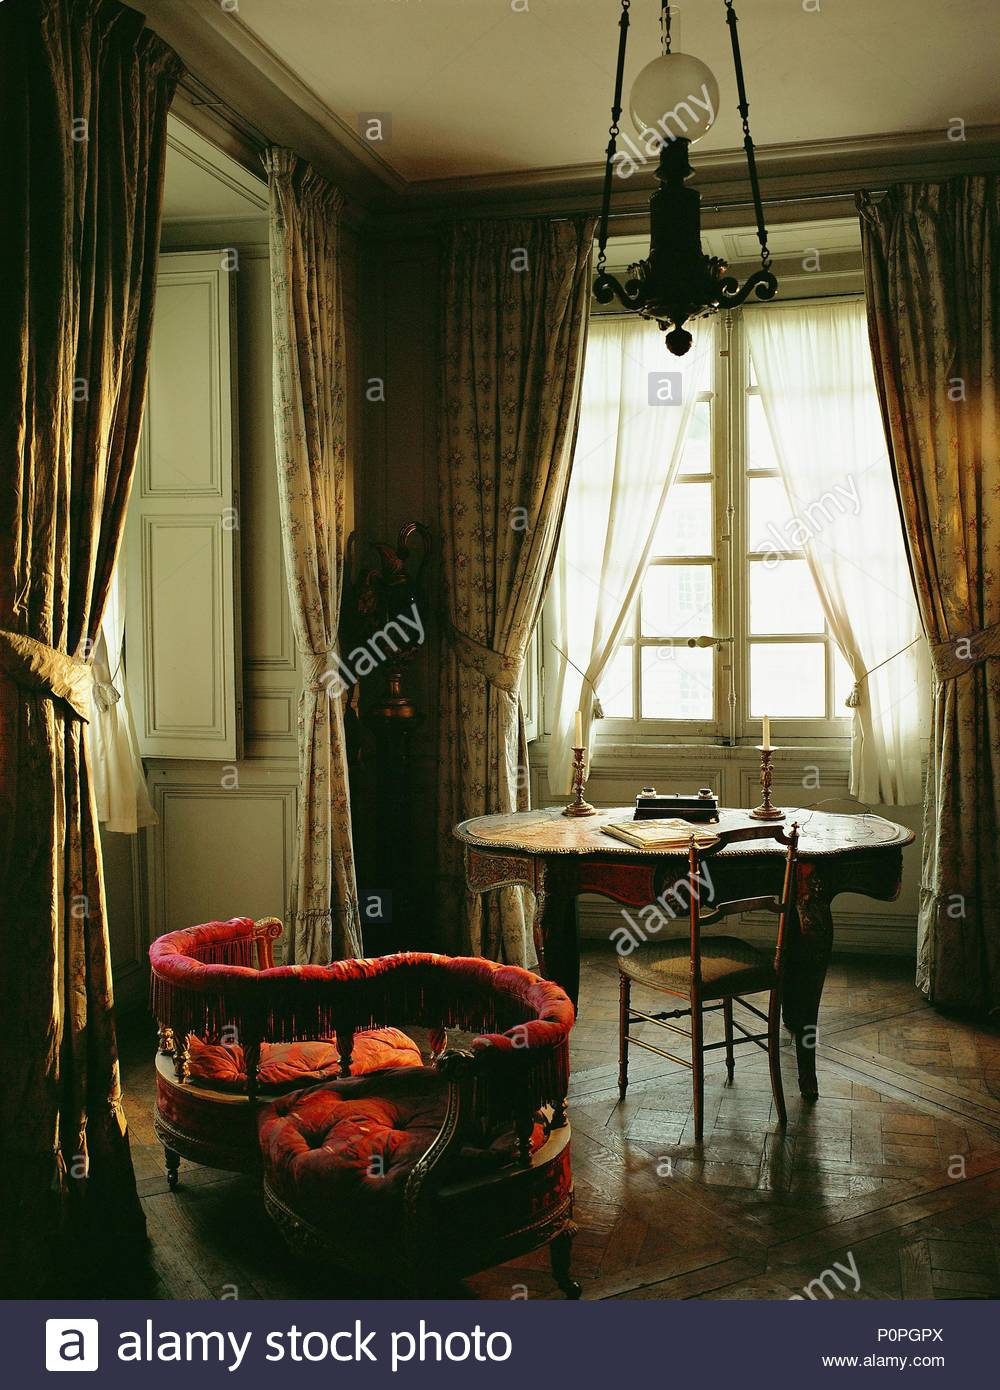 Location De Chaises Napoleon Chateau De Compiegne Favourite Residence Of Napoleon Iii And